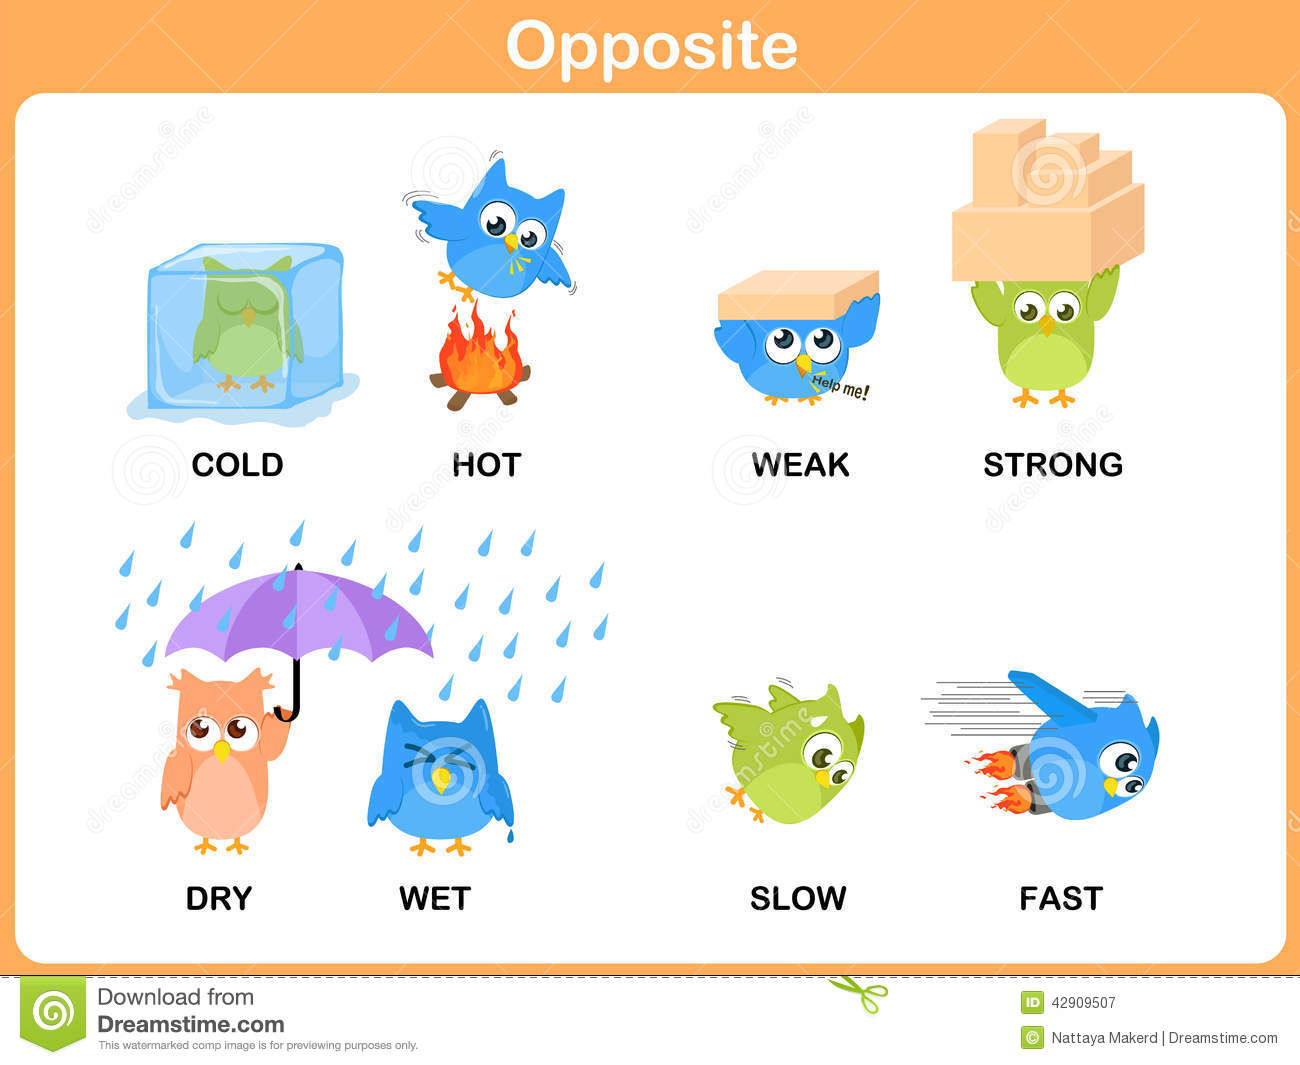 15 English Opposite Worksheets For Grade 1